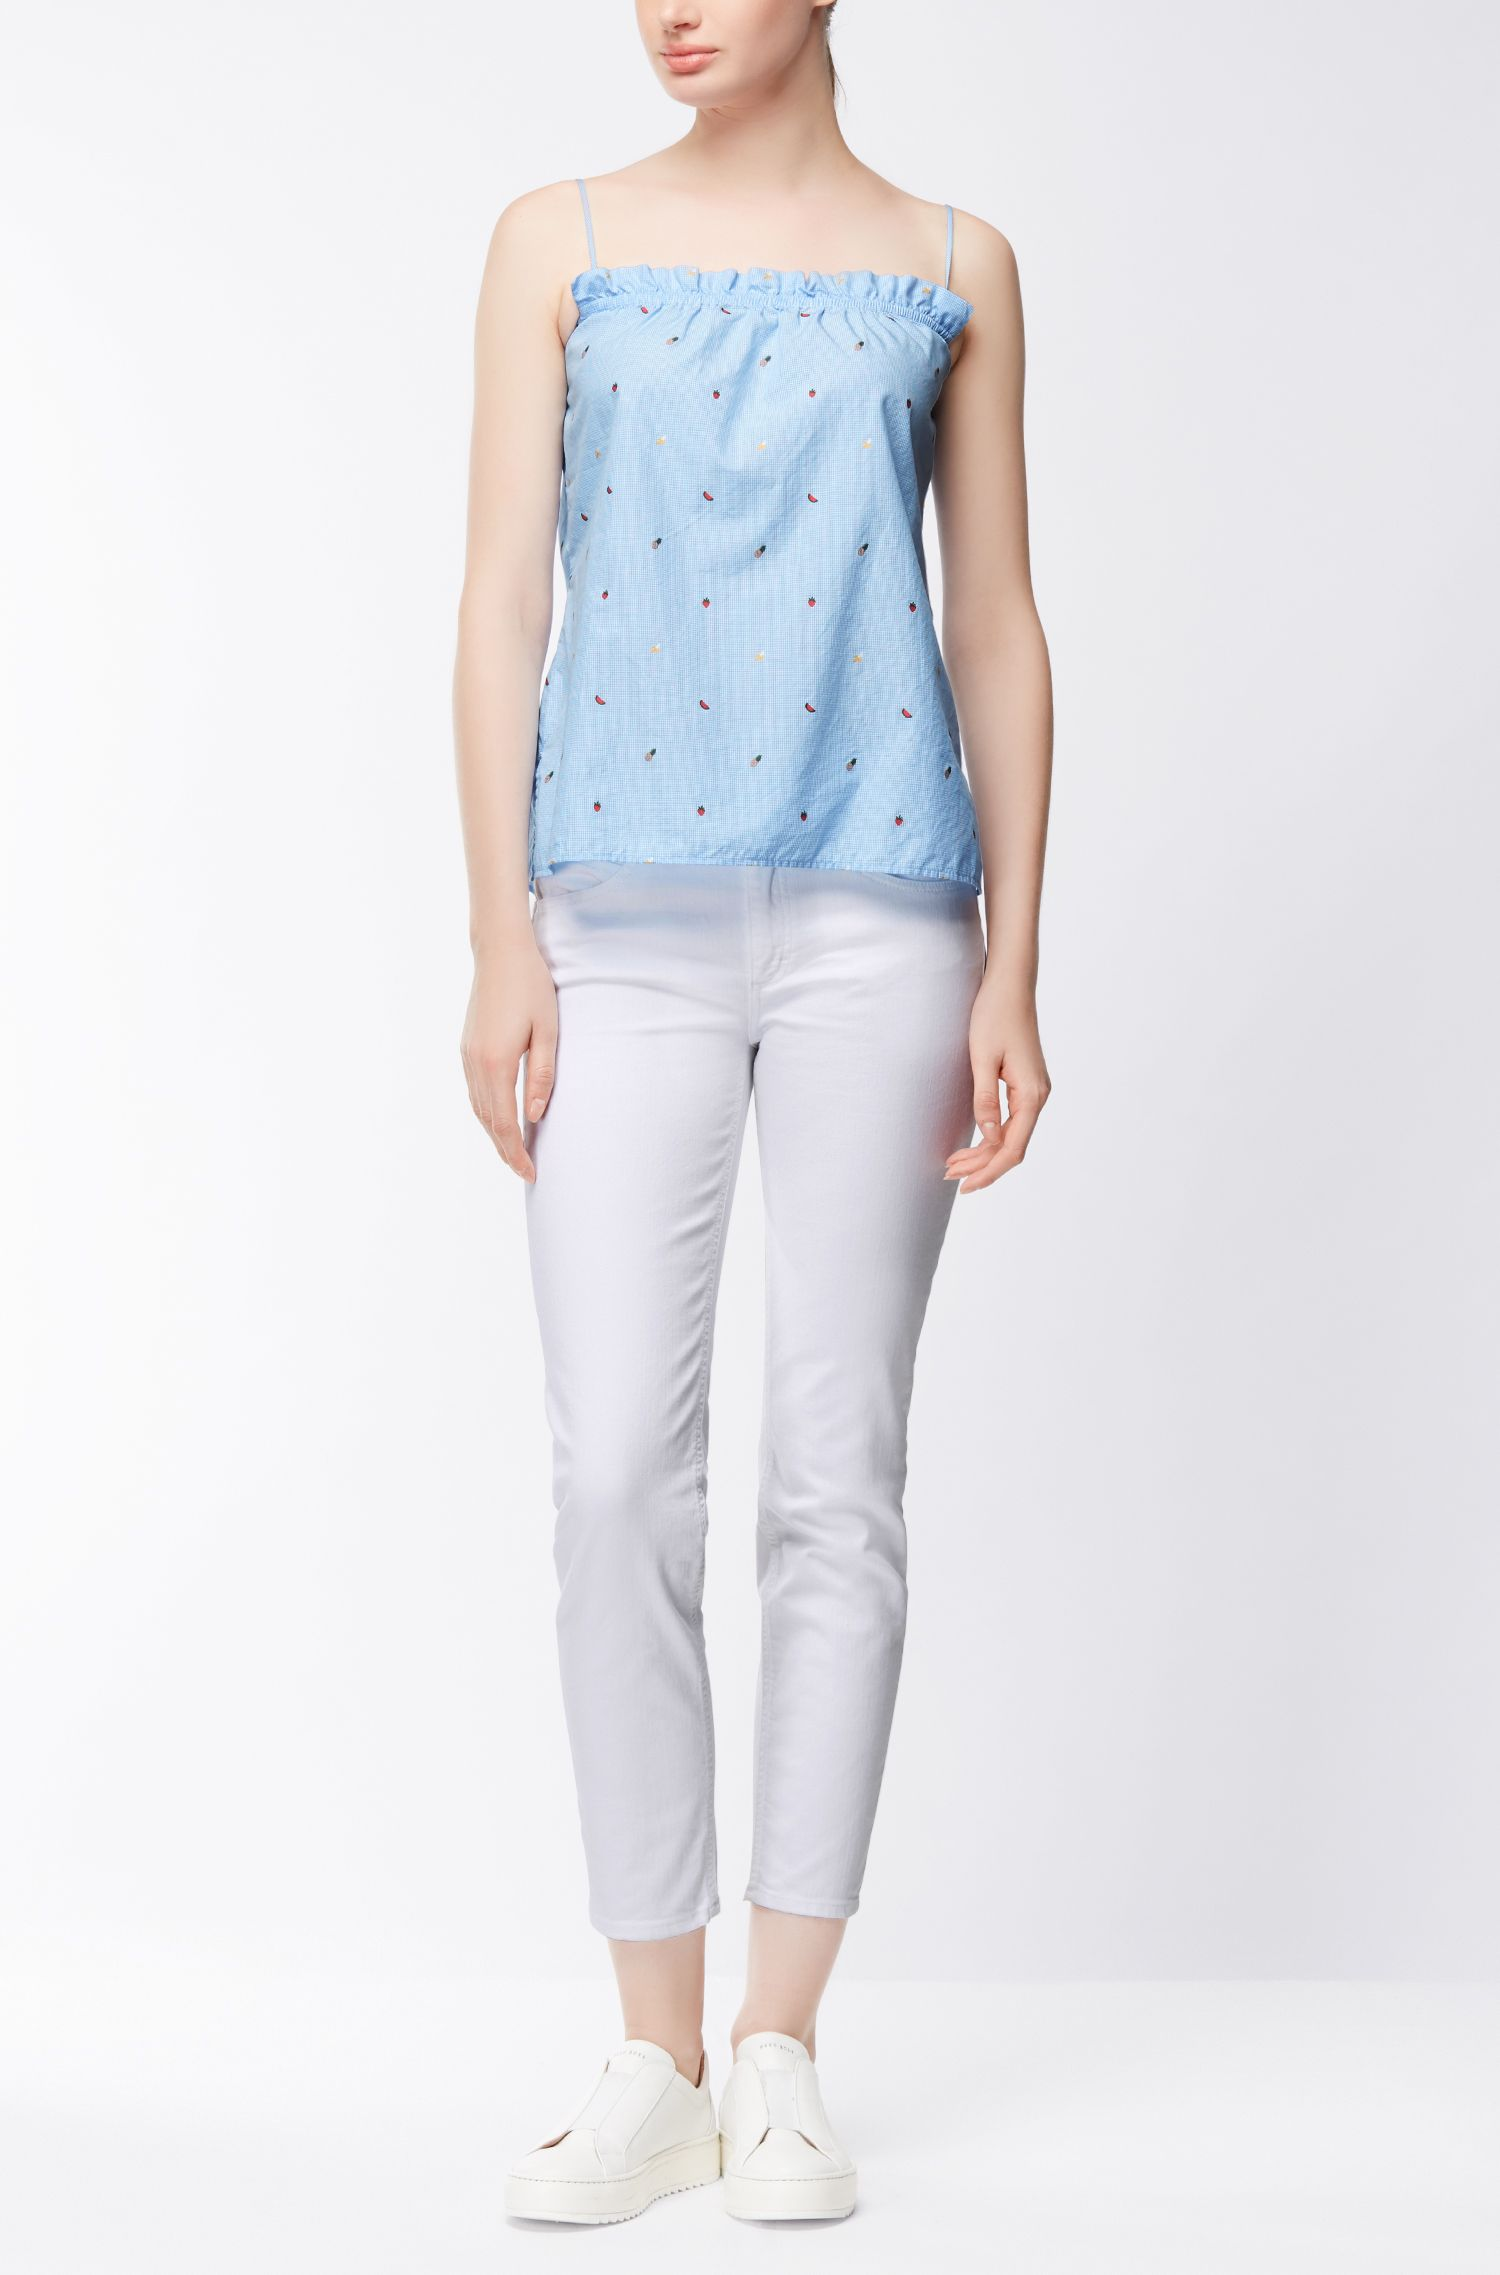 Cotton-jacquard camisole with gathered detailing